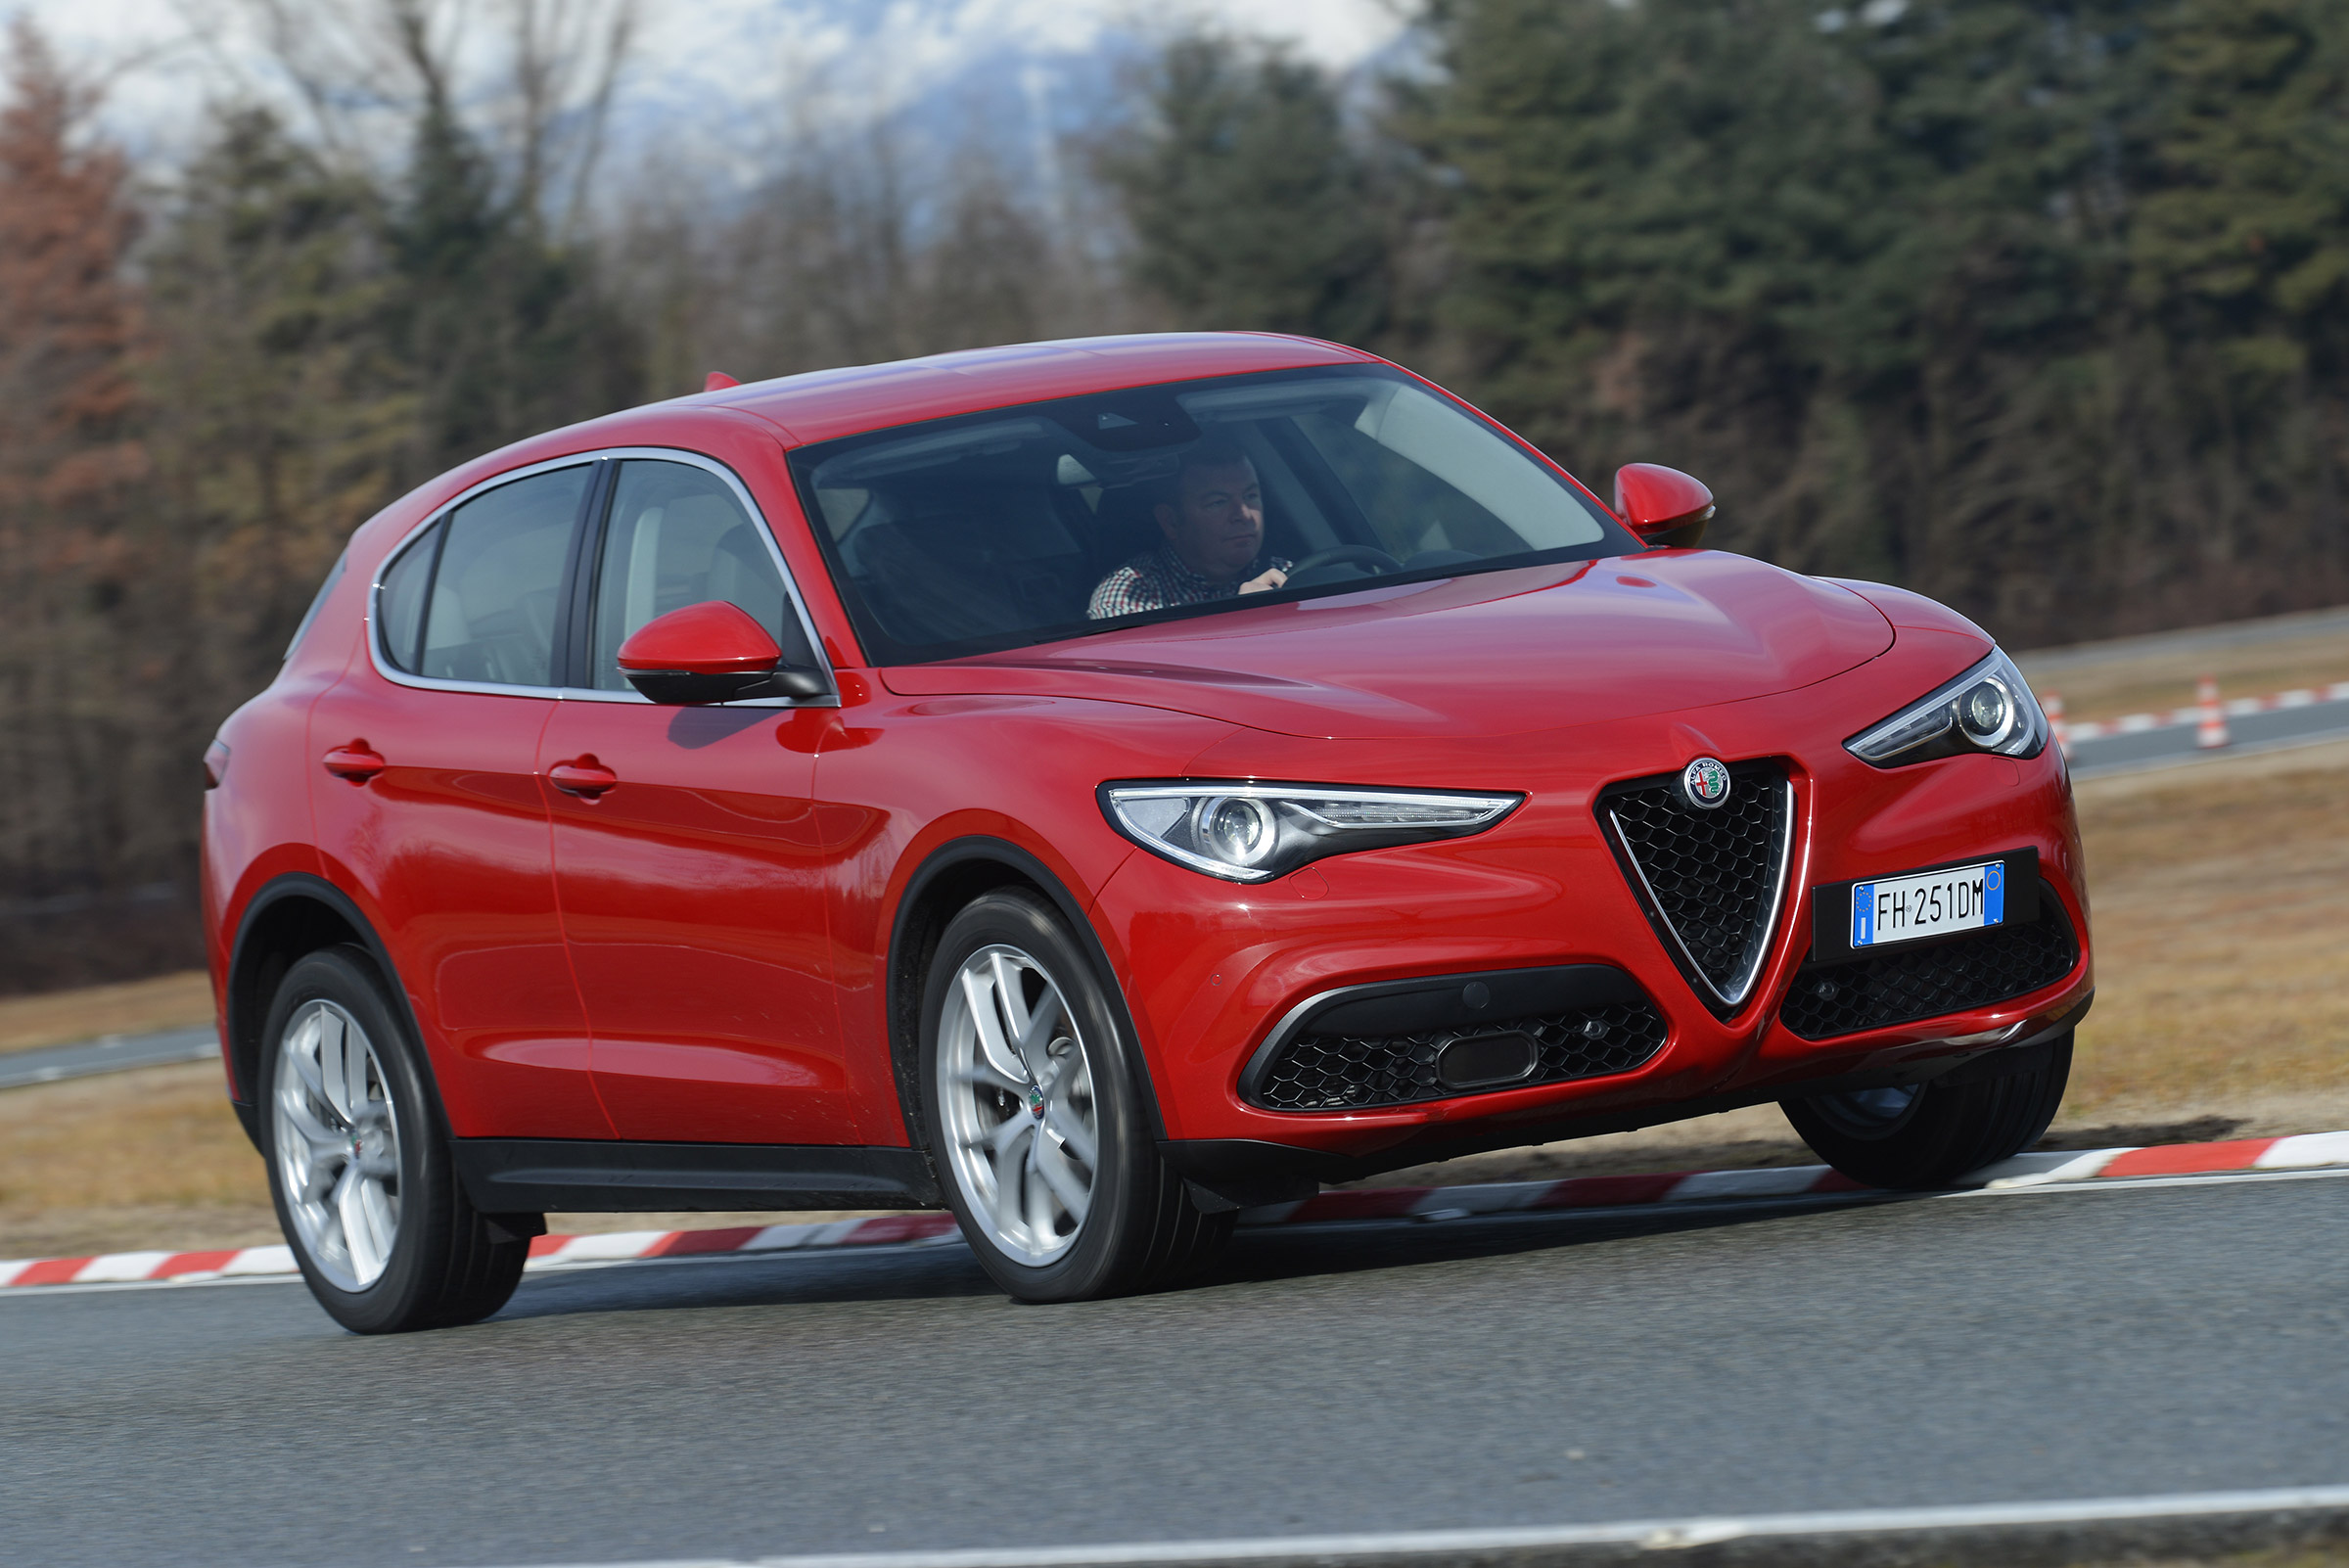 2017 Alfa Romeo Stelvio Red Metallic (Photo 17 of 23)